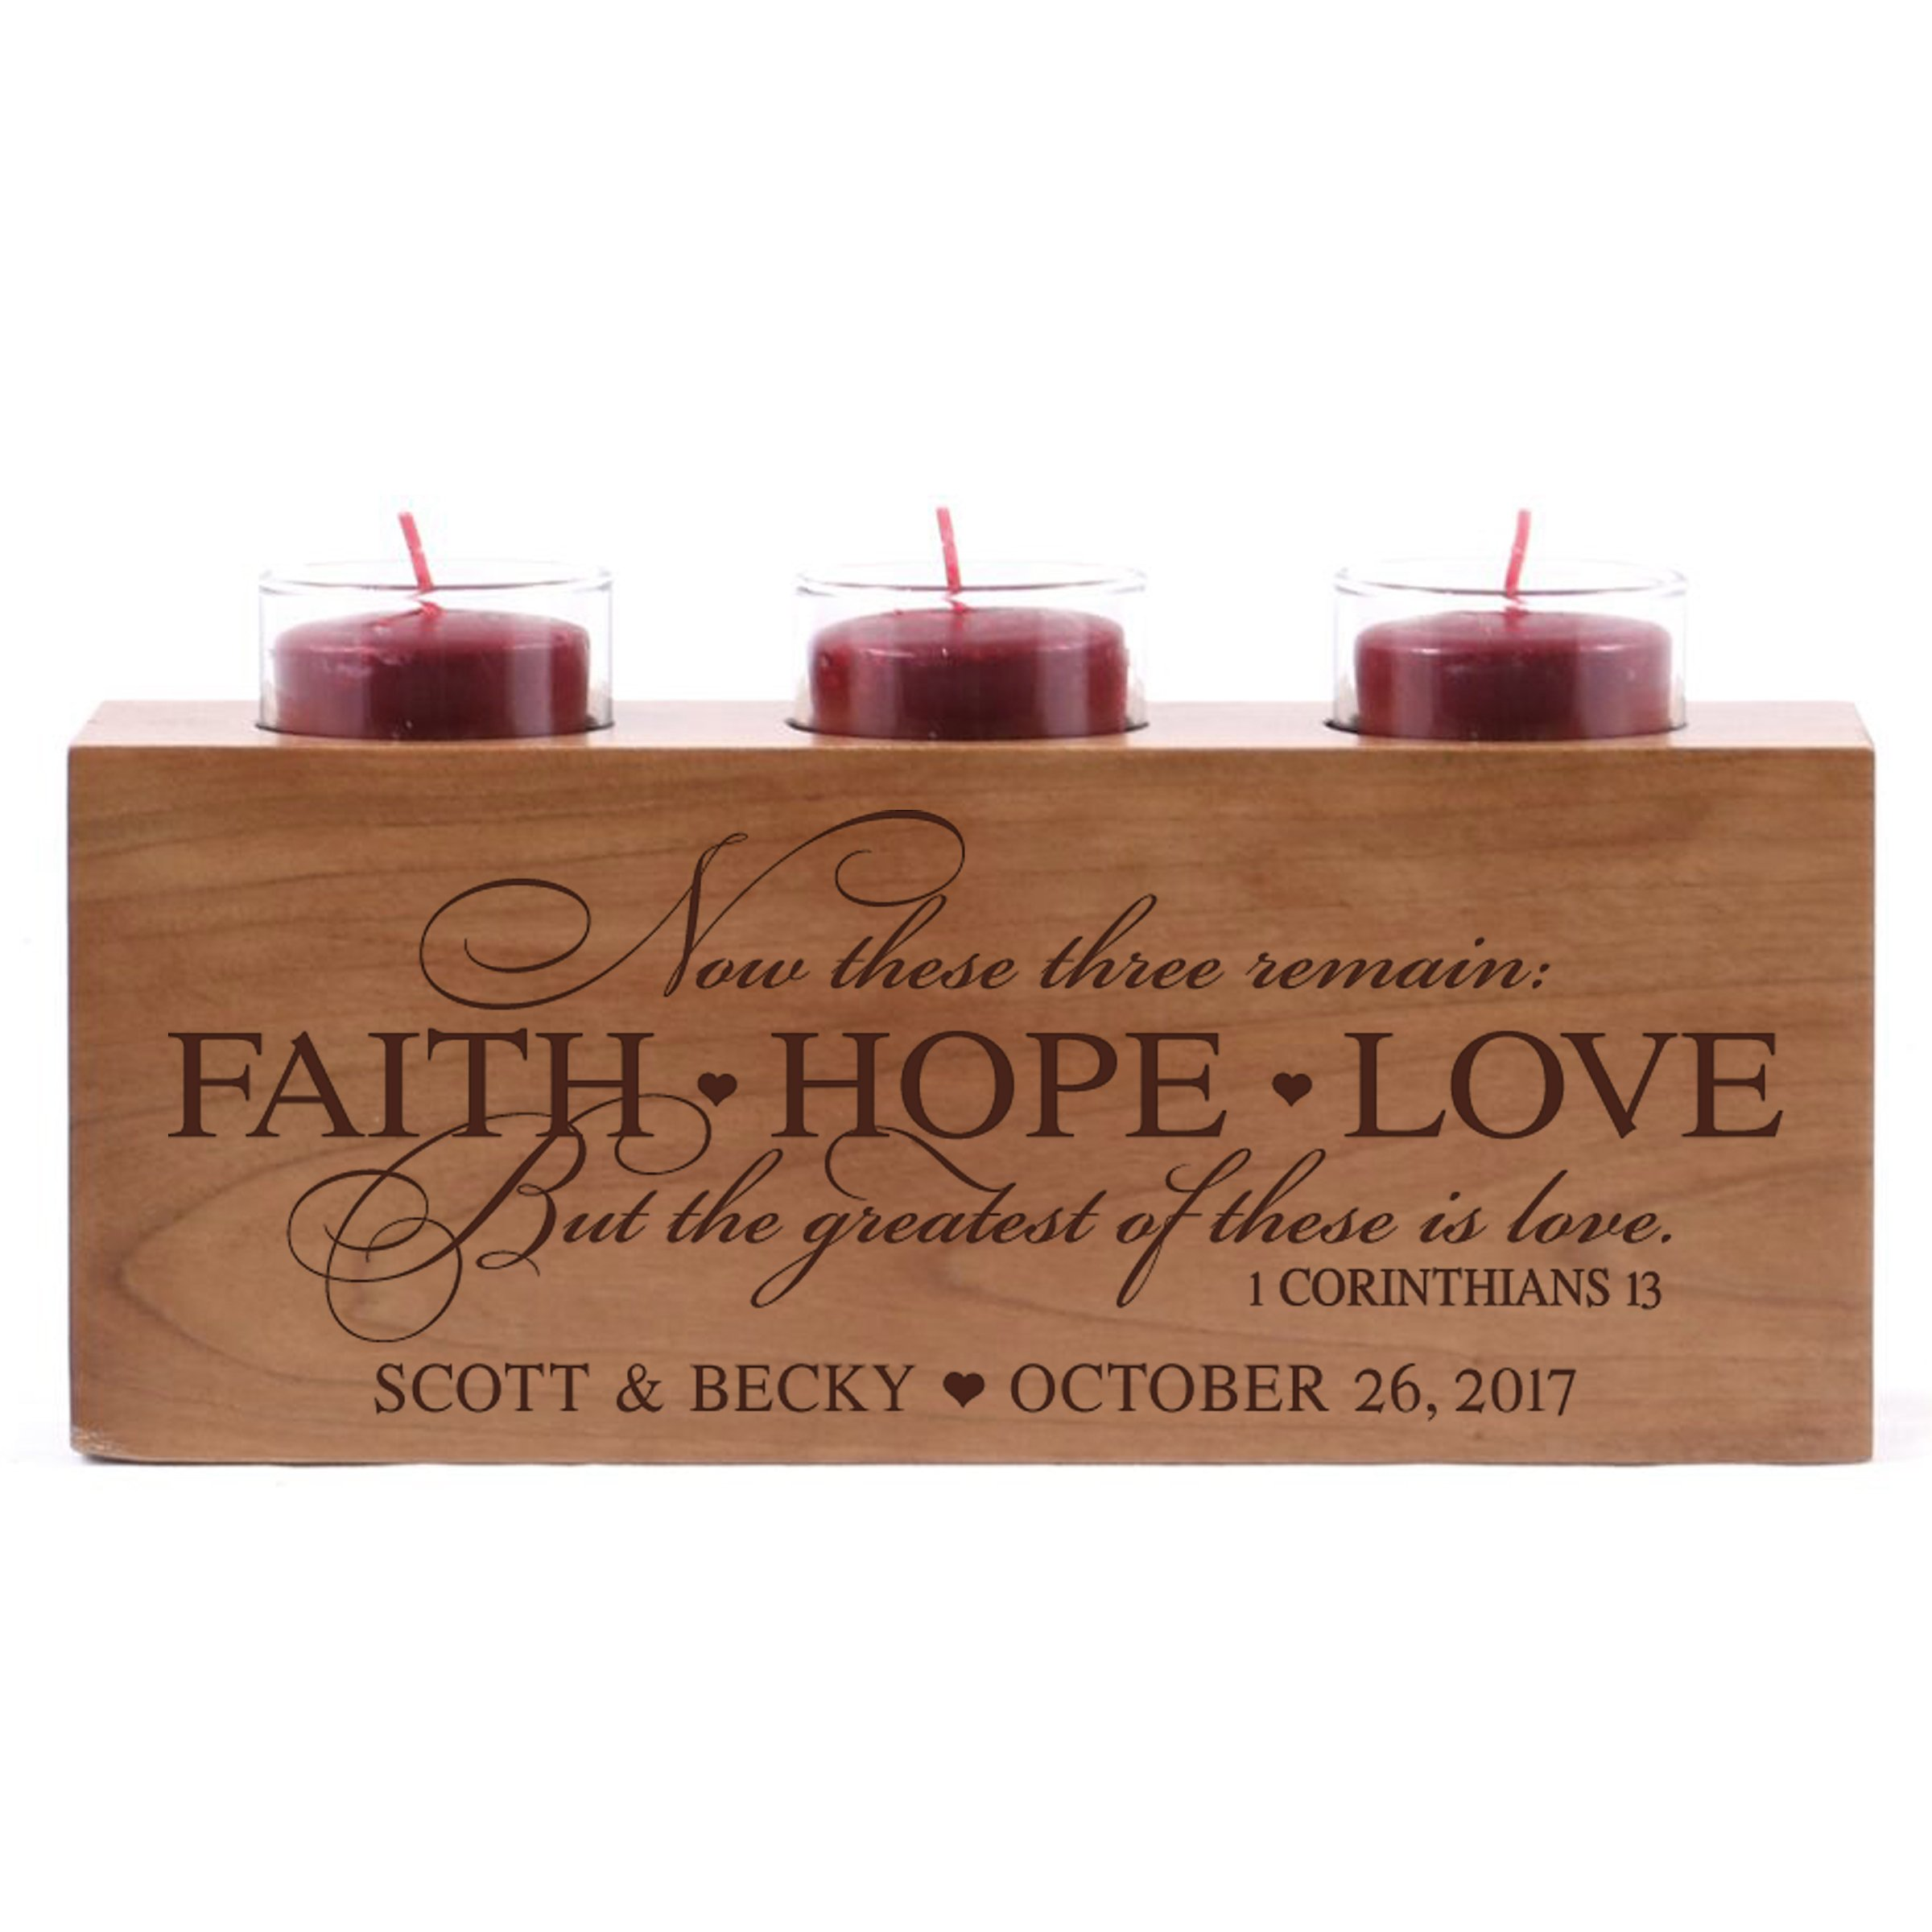 Personalized wedding anniversary candle holder for him her engraved cherry wood engagement ideas for boyfriend or girlfriend One FAITH HOPE LOVE 10'' L x 4'' H by LifeSong Milestones (Faith Hope Love)